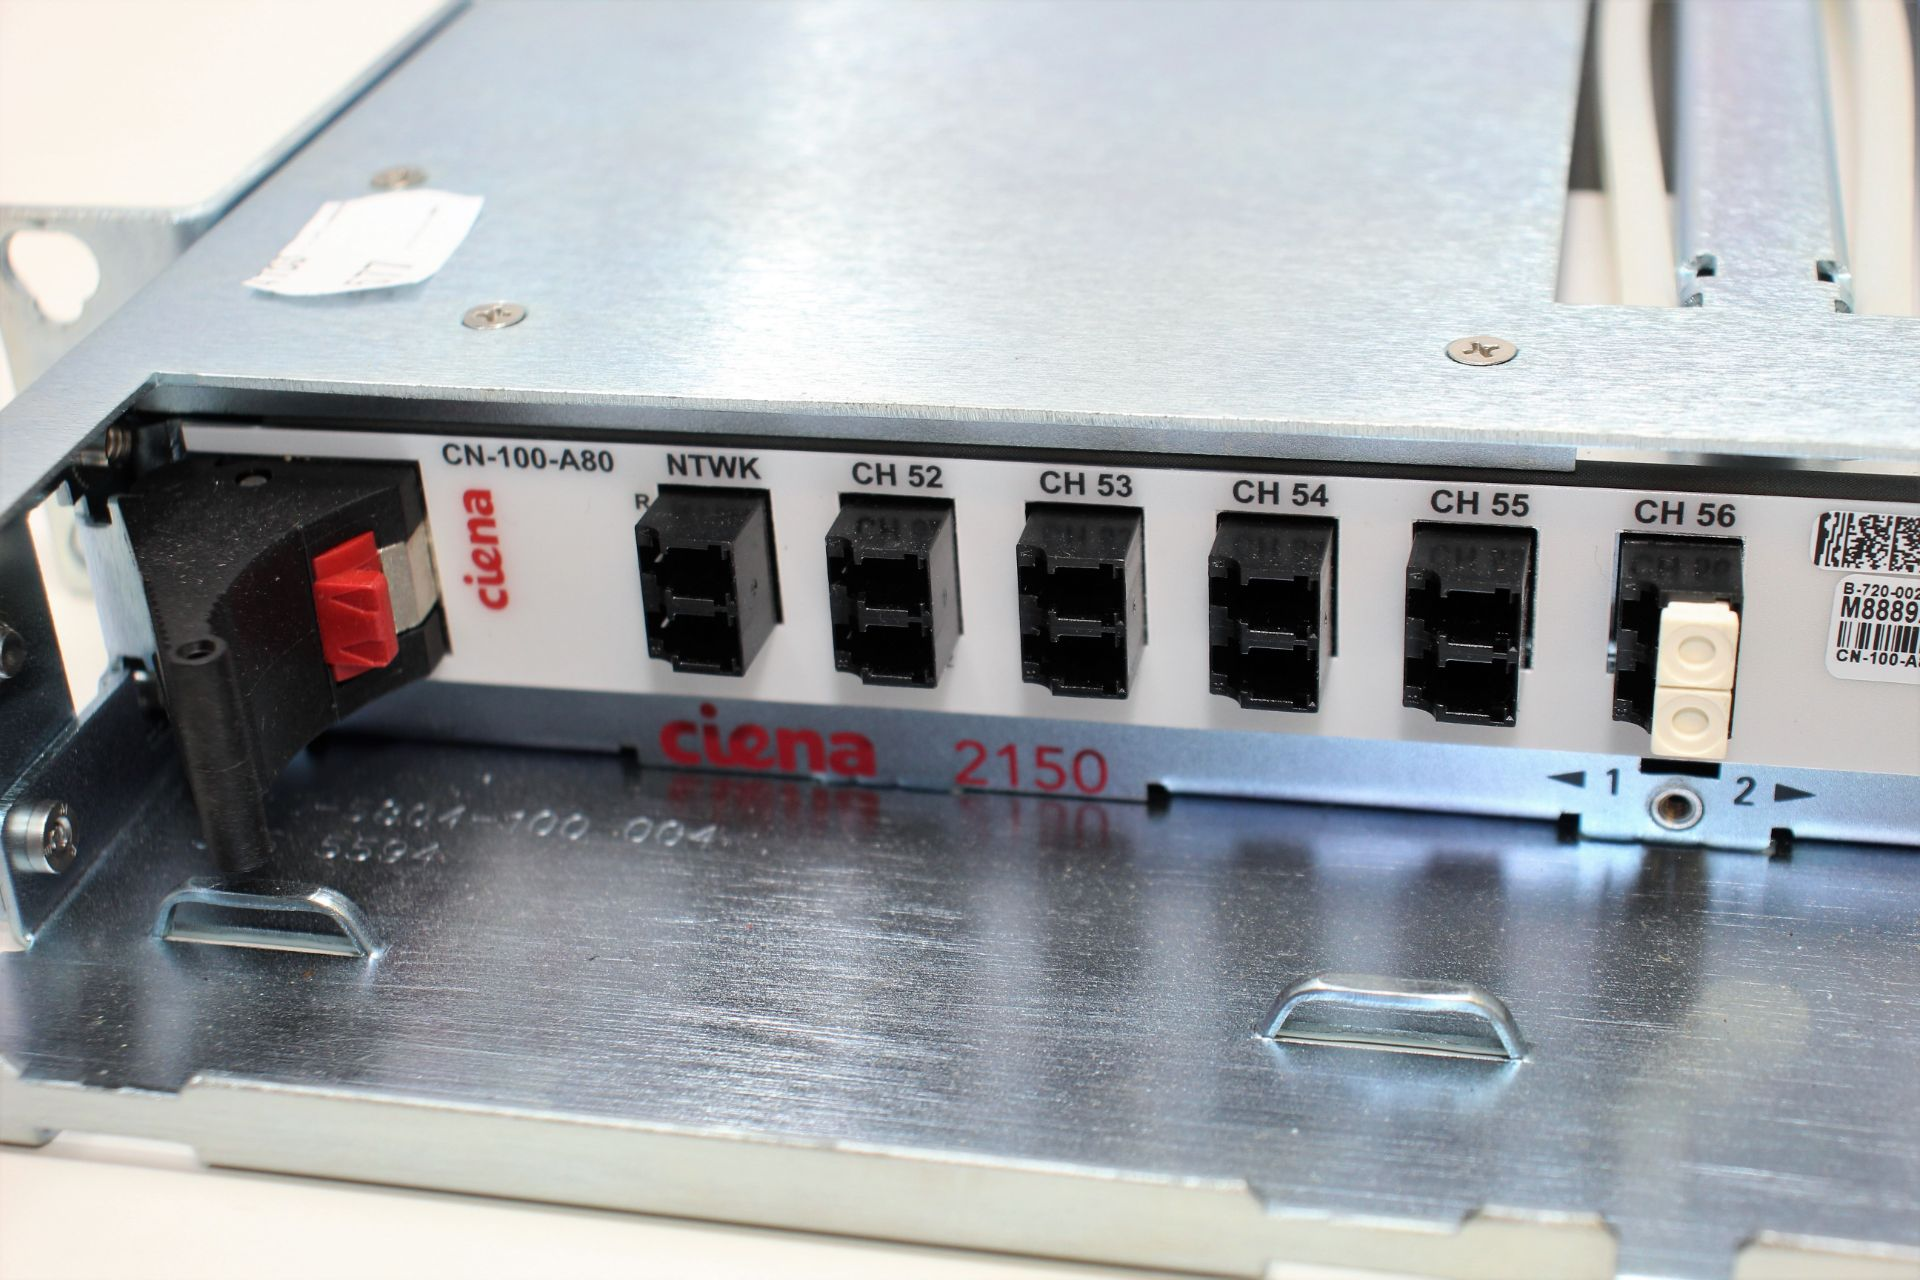 A pre-owned Ciena CN-100-A80 B-720-0022-001 WM0AALWEAA M8889291 DWDM Module (Untested, sold as - Image 3 of 3